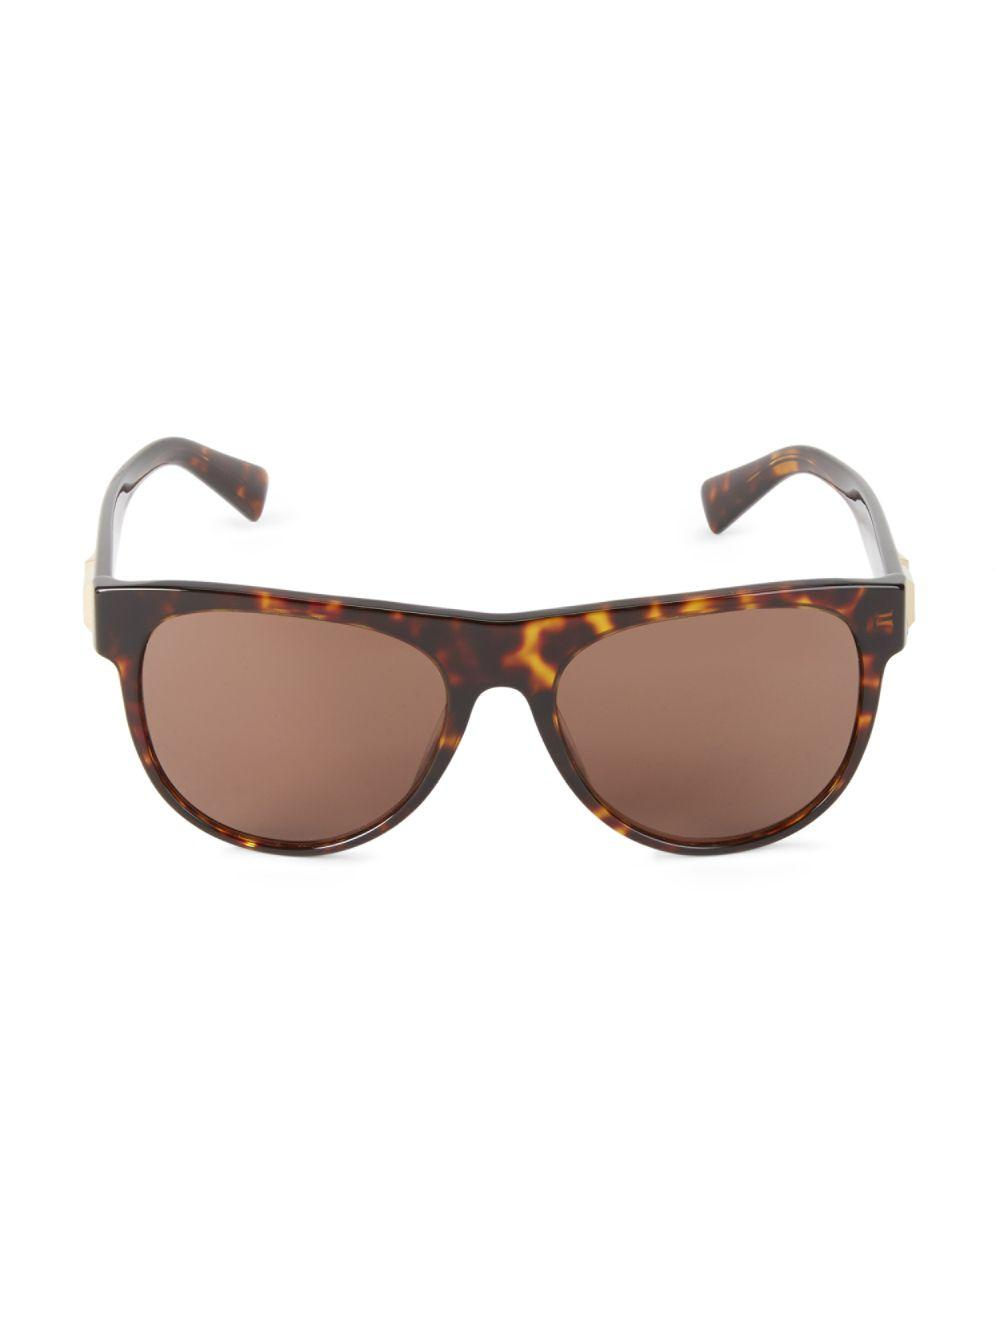 f2d50a825555 Lyst - Versace 57mm Tortoiseshell Rounded Sunglasses in Brown